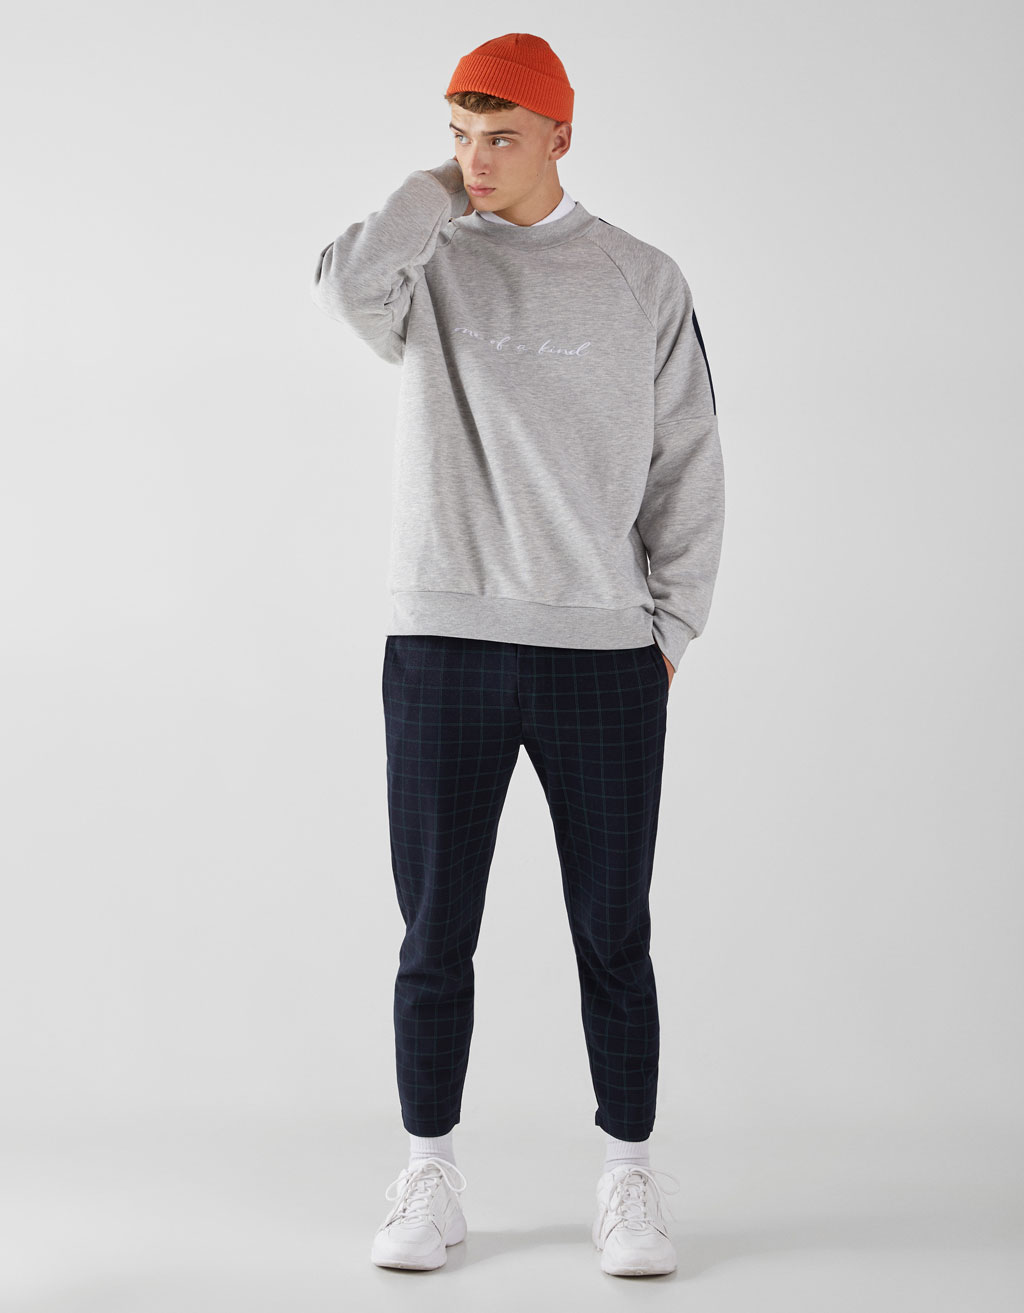 Sweatshirt with side bands